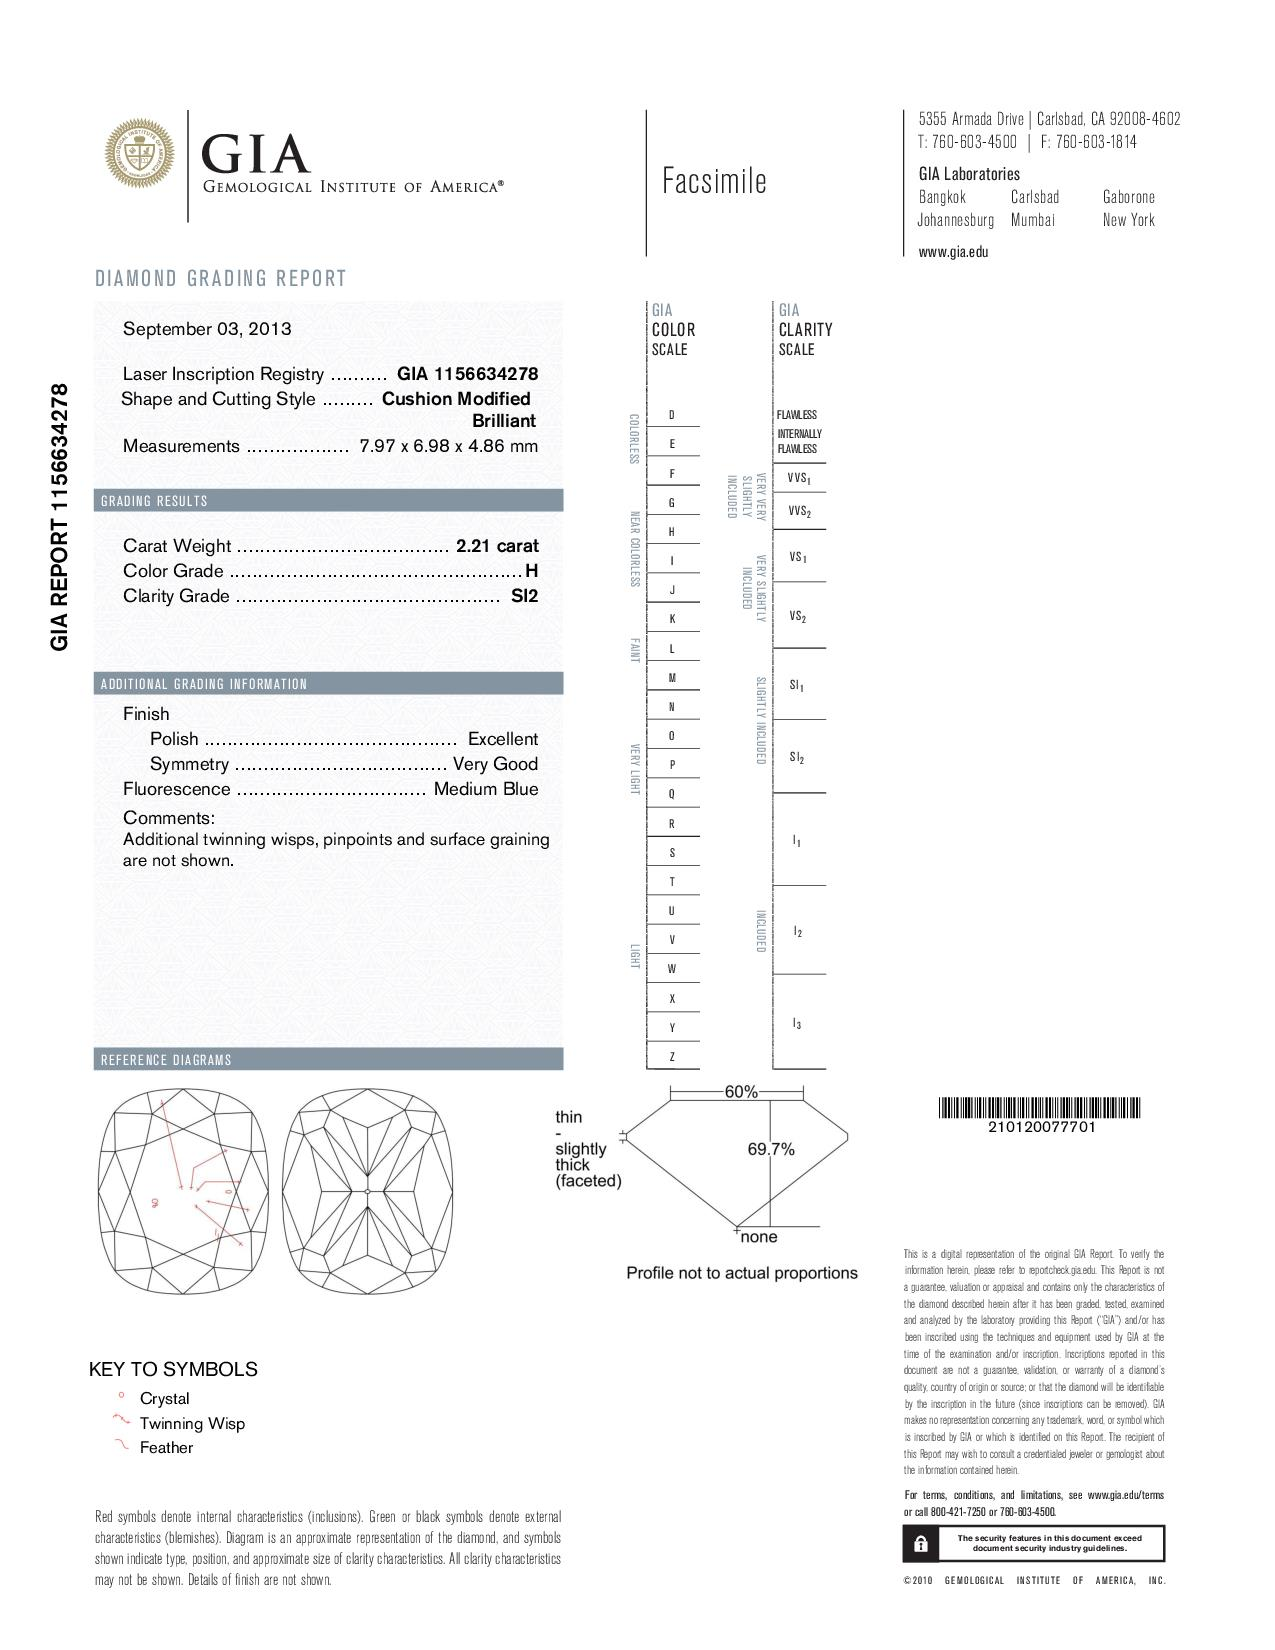 This is a 2.21 carat cushion shape, H color, SI2 clarity natural diamond accompanied by a GIA grading report.